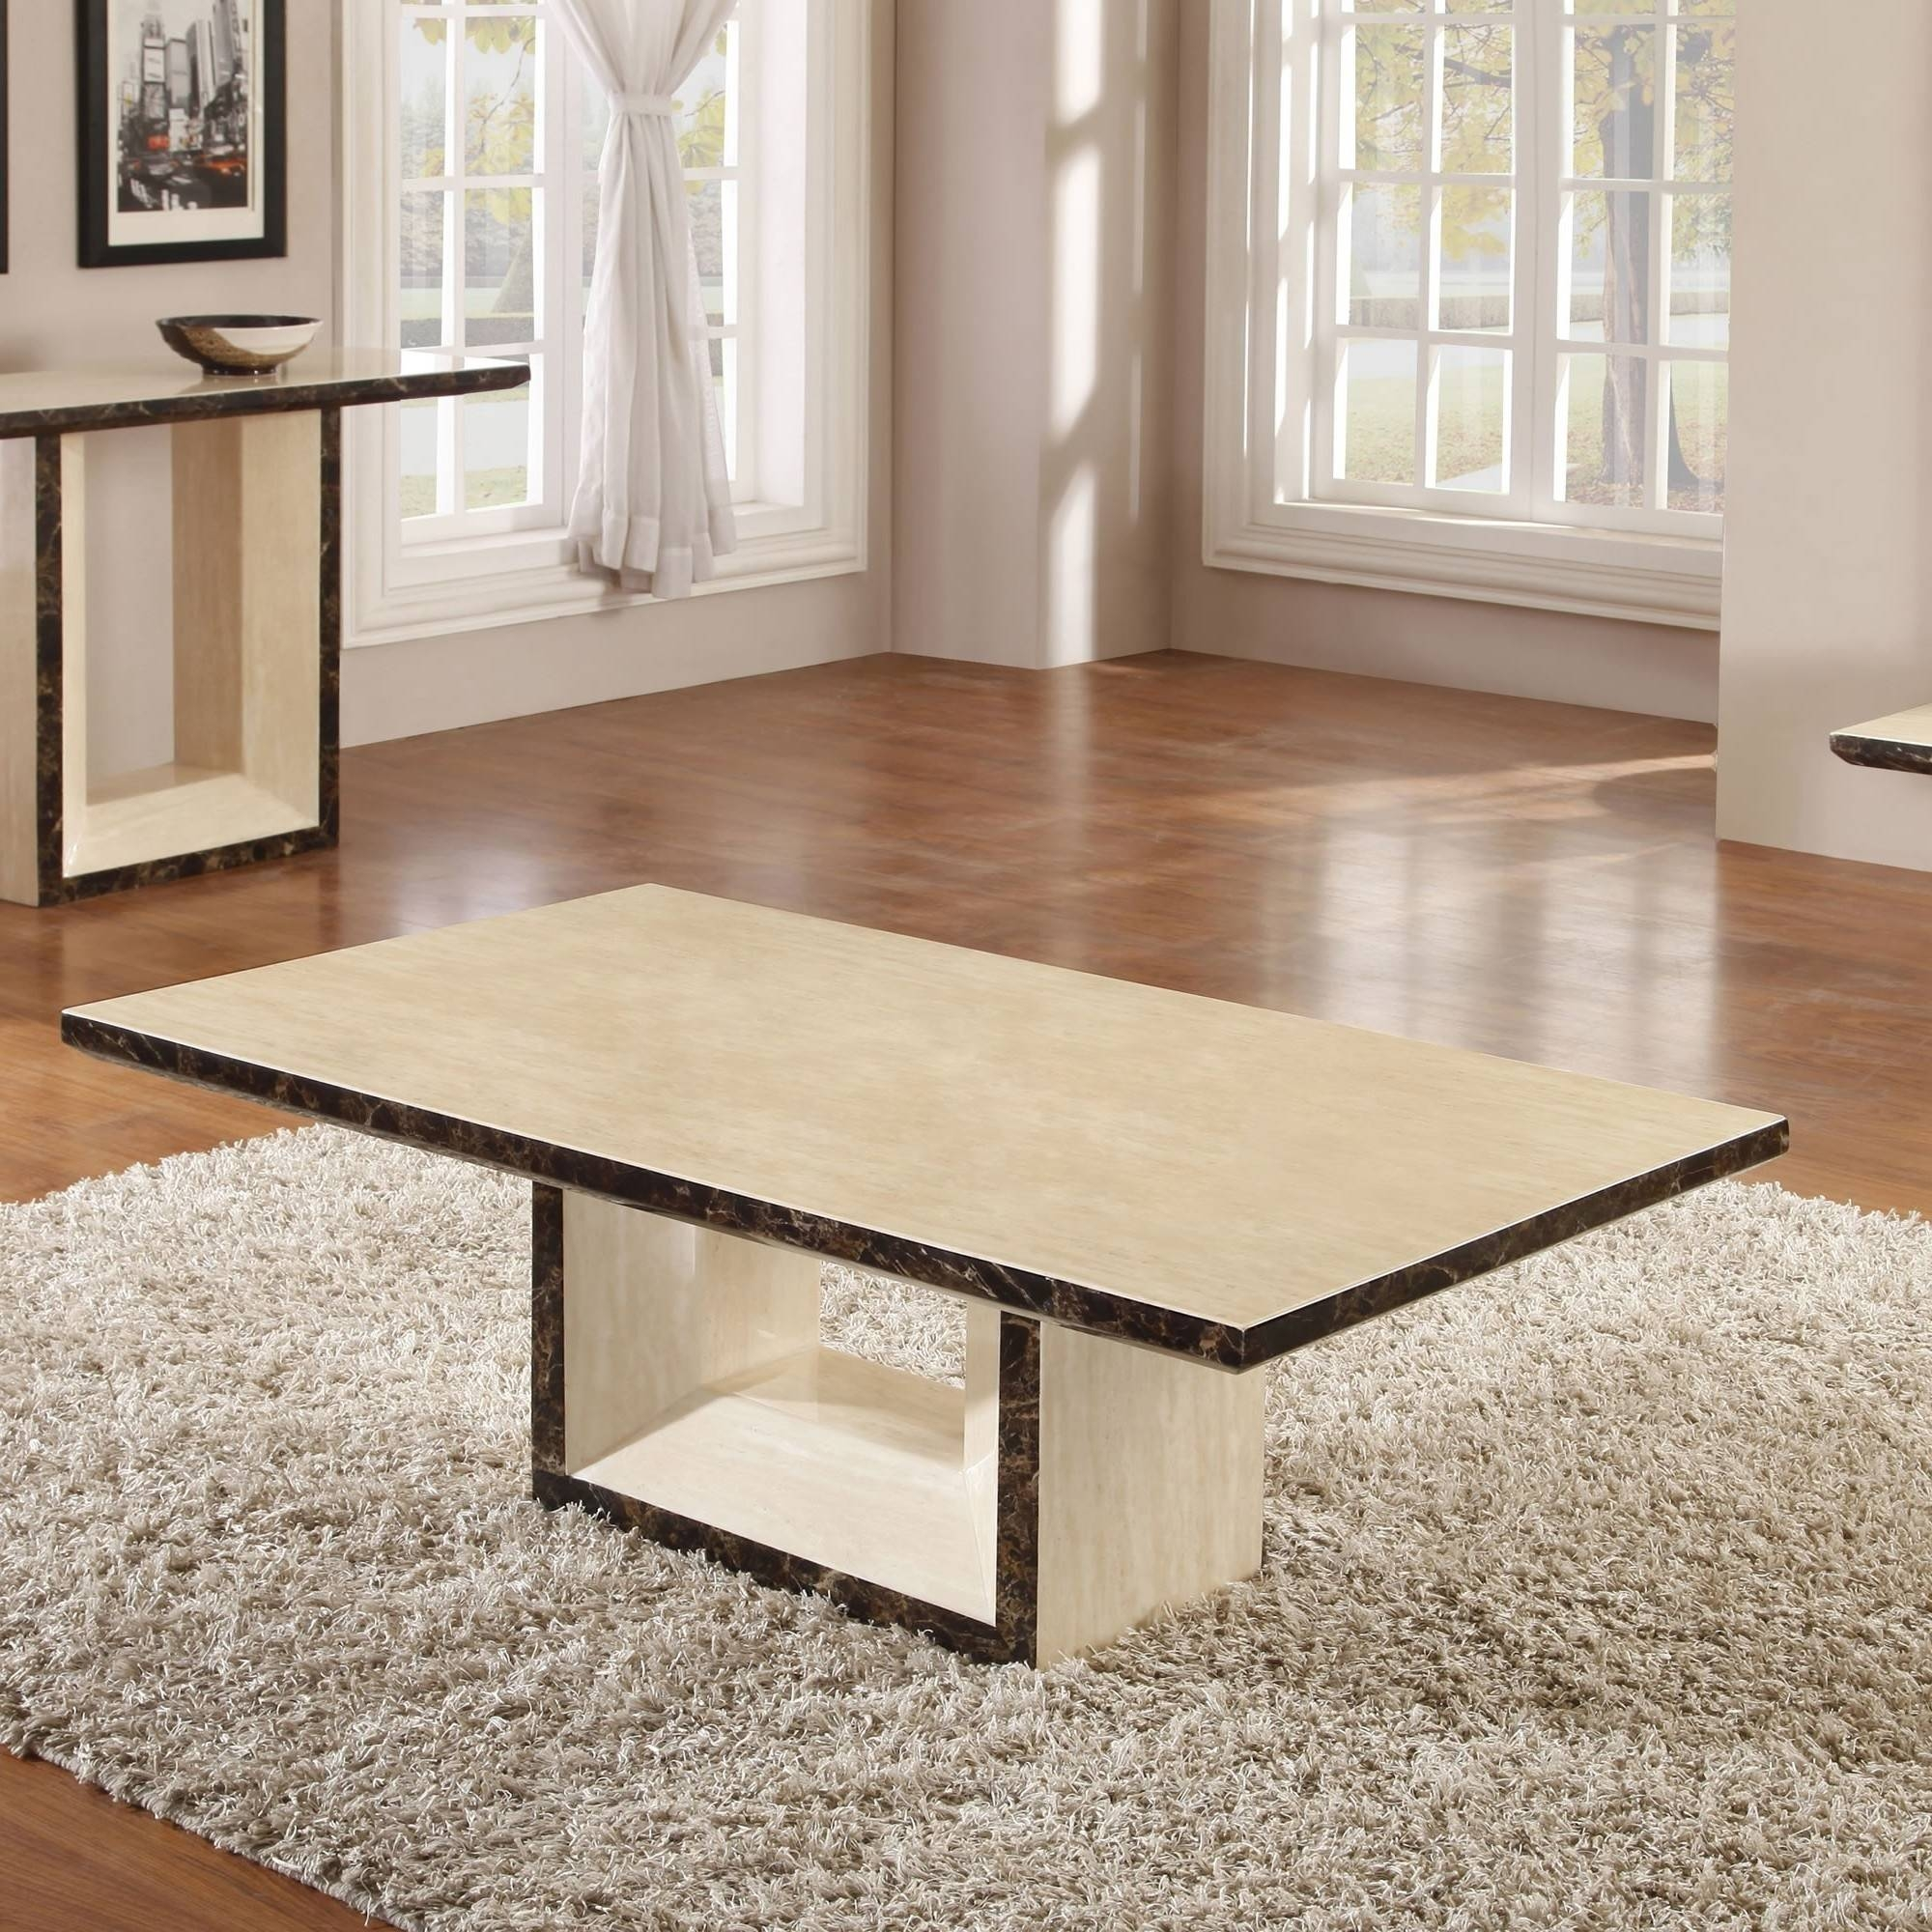 Coffee Table. Stunning Cream Coffee Table Design Ideas: New throughout Cream and Oak Coffee Tables (Image 8 of 30)